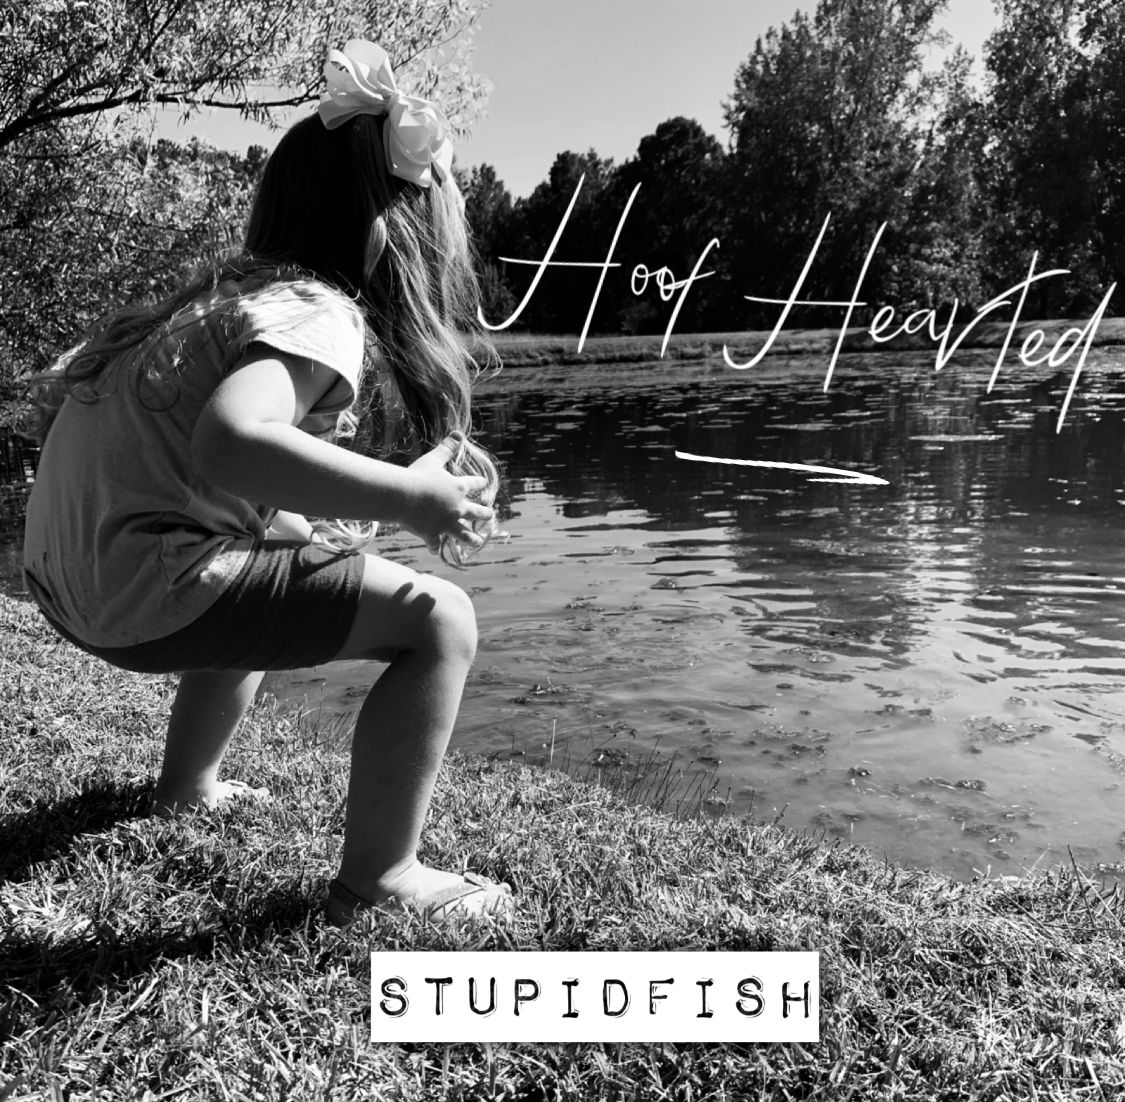 Tried to take a cutesy picture of my daughter sitting by the pond. She stood up halfway through and I thought it looked like she was screaming angrily at the fish. Made it into a fake album cover.